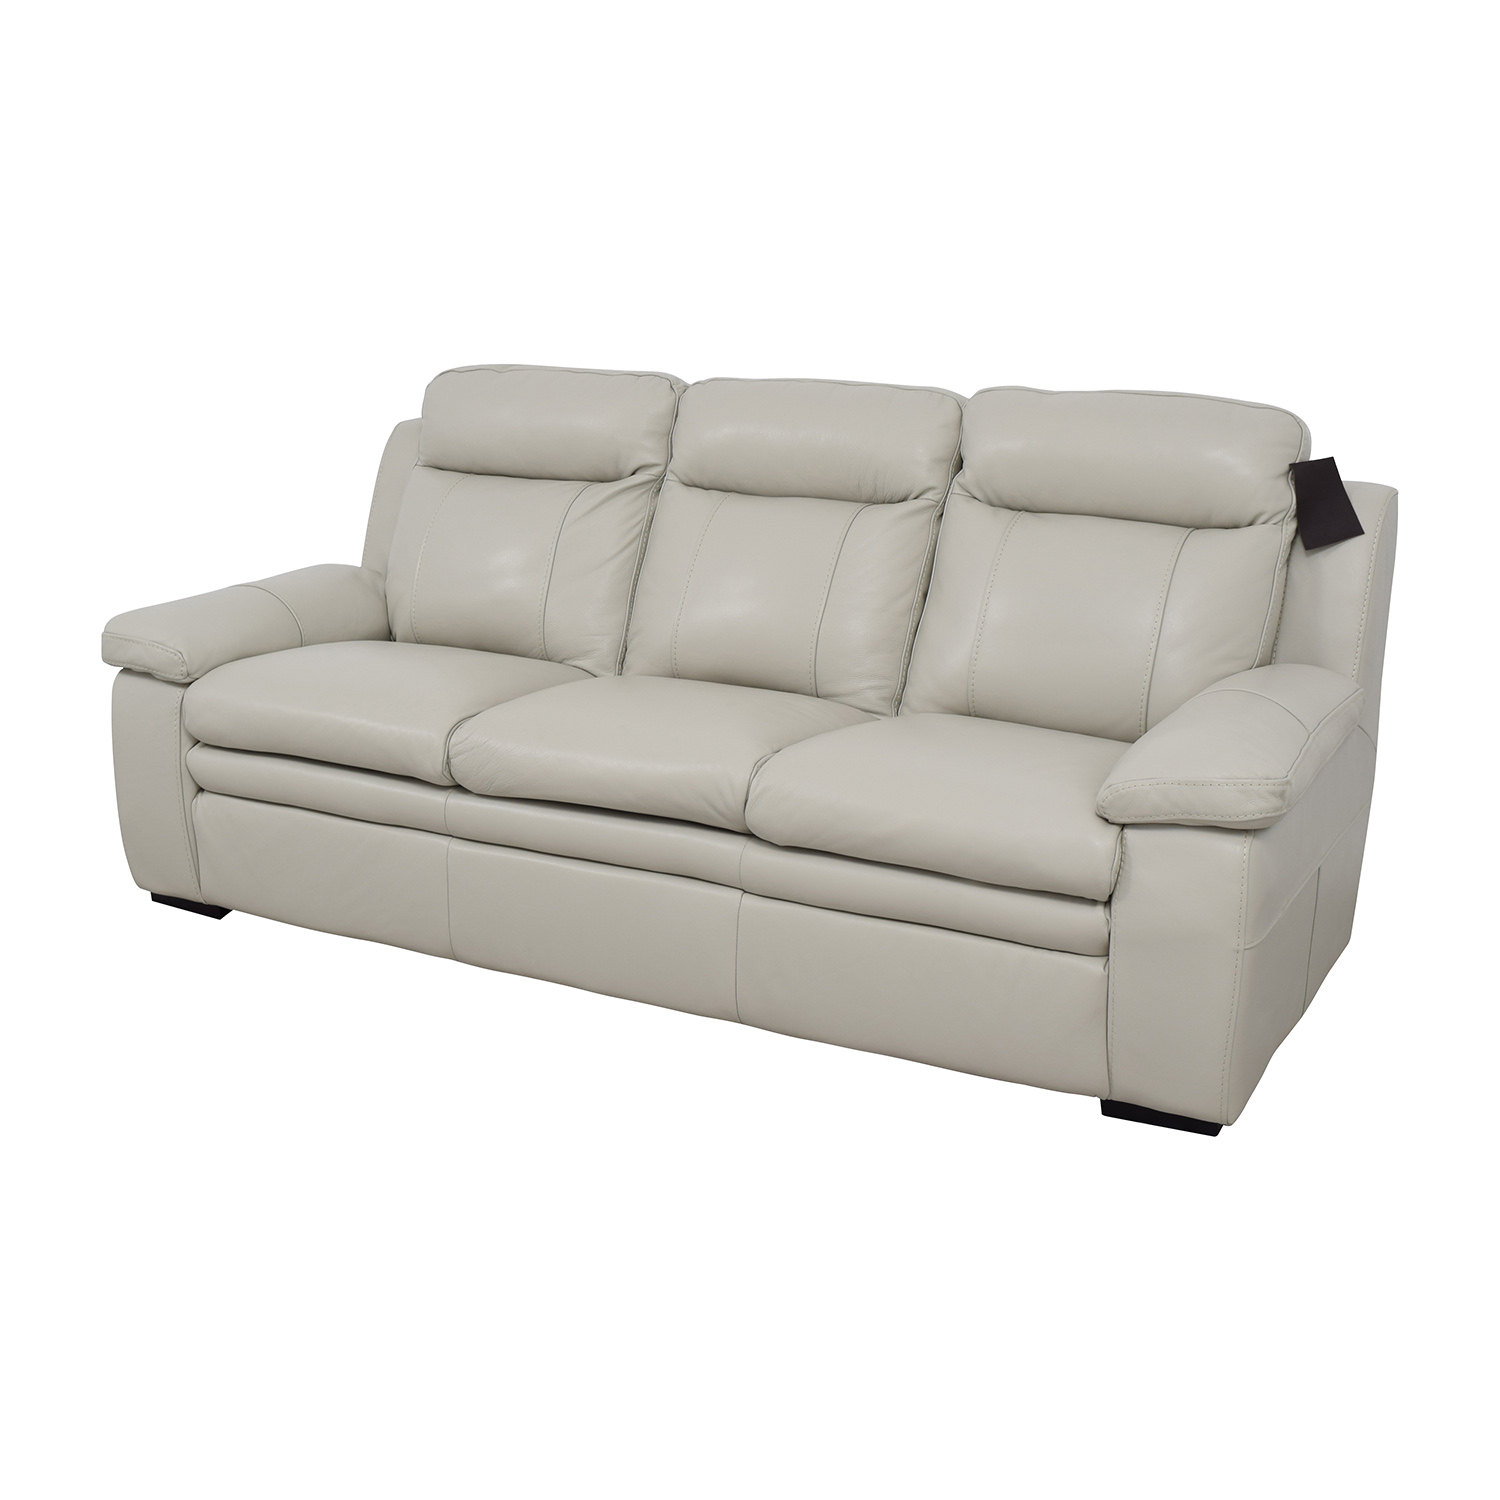 67 Off Macy 39 S Macy 39 S Zane White Leather Sofa Sofas